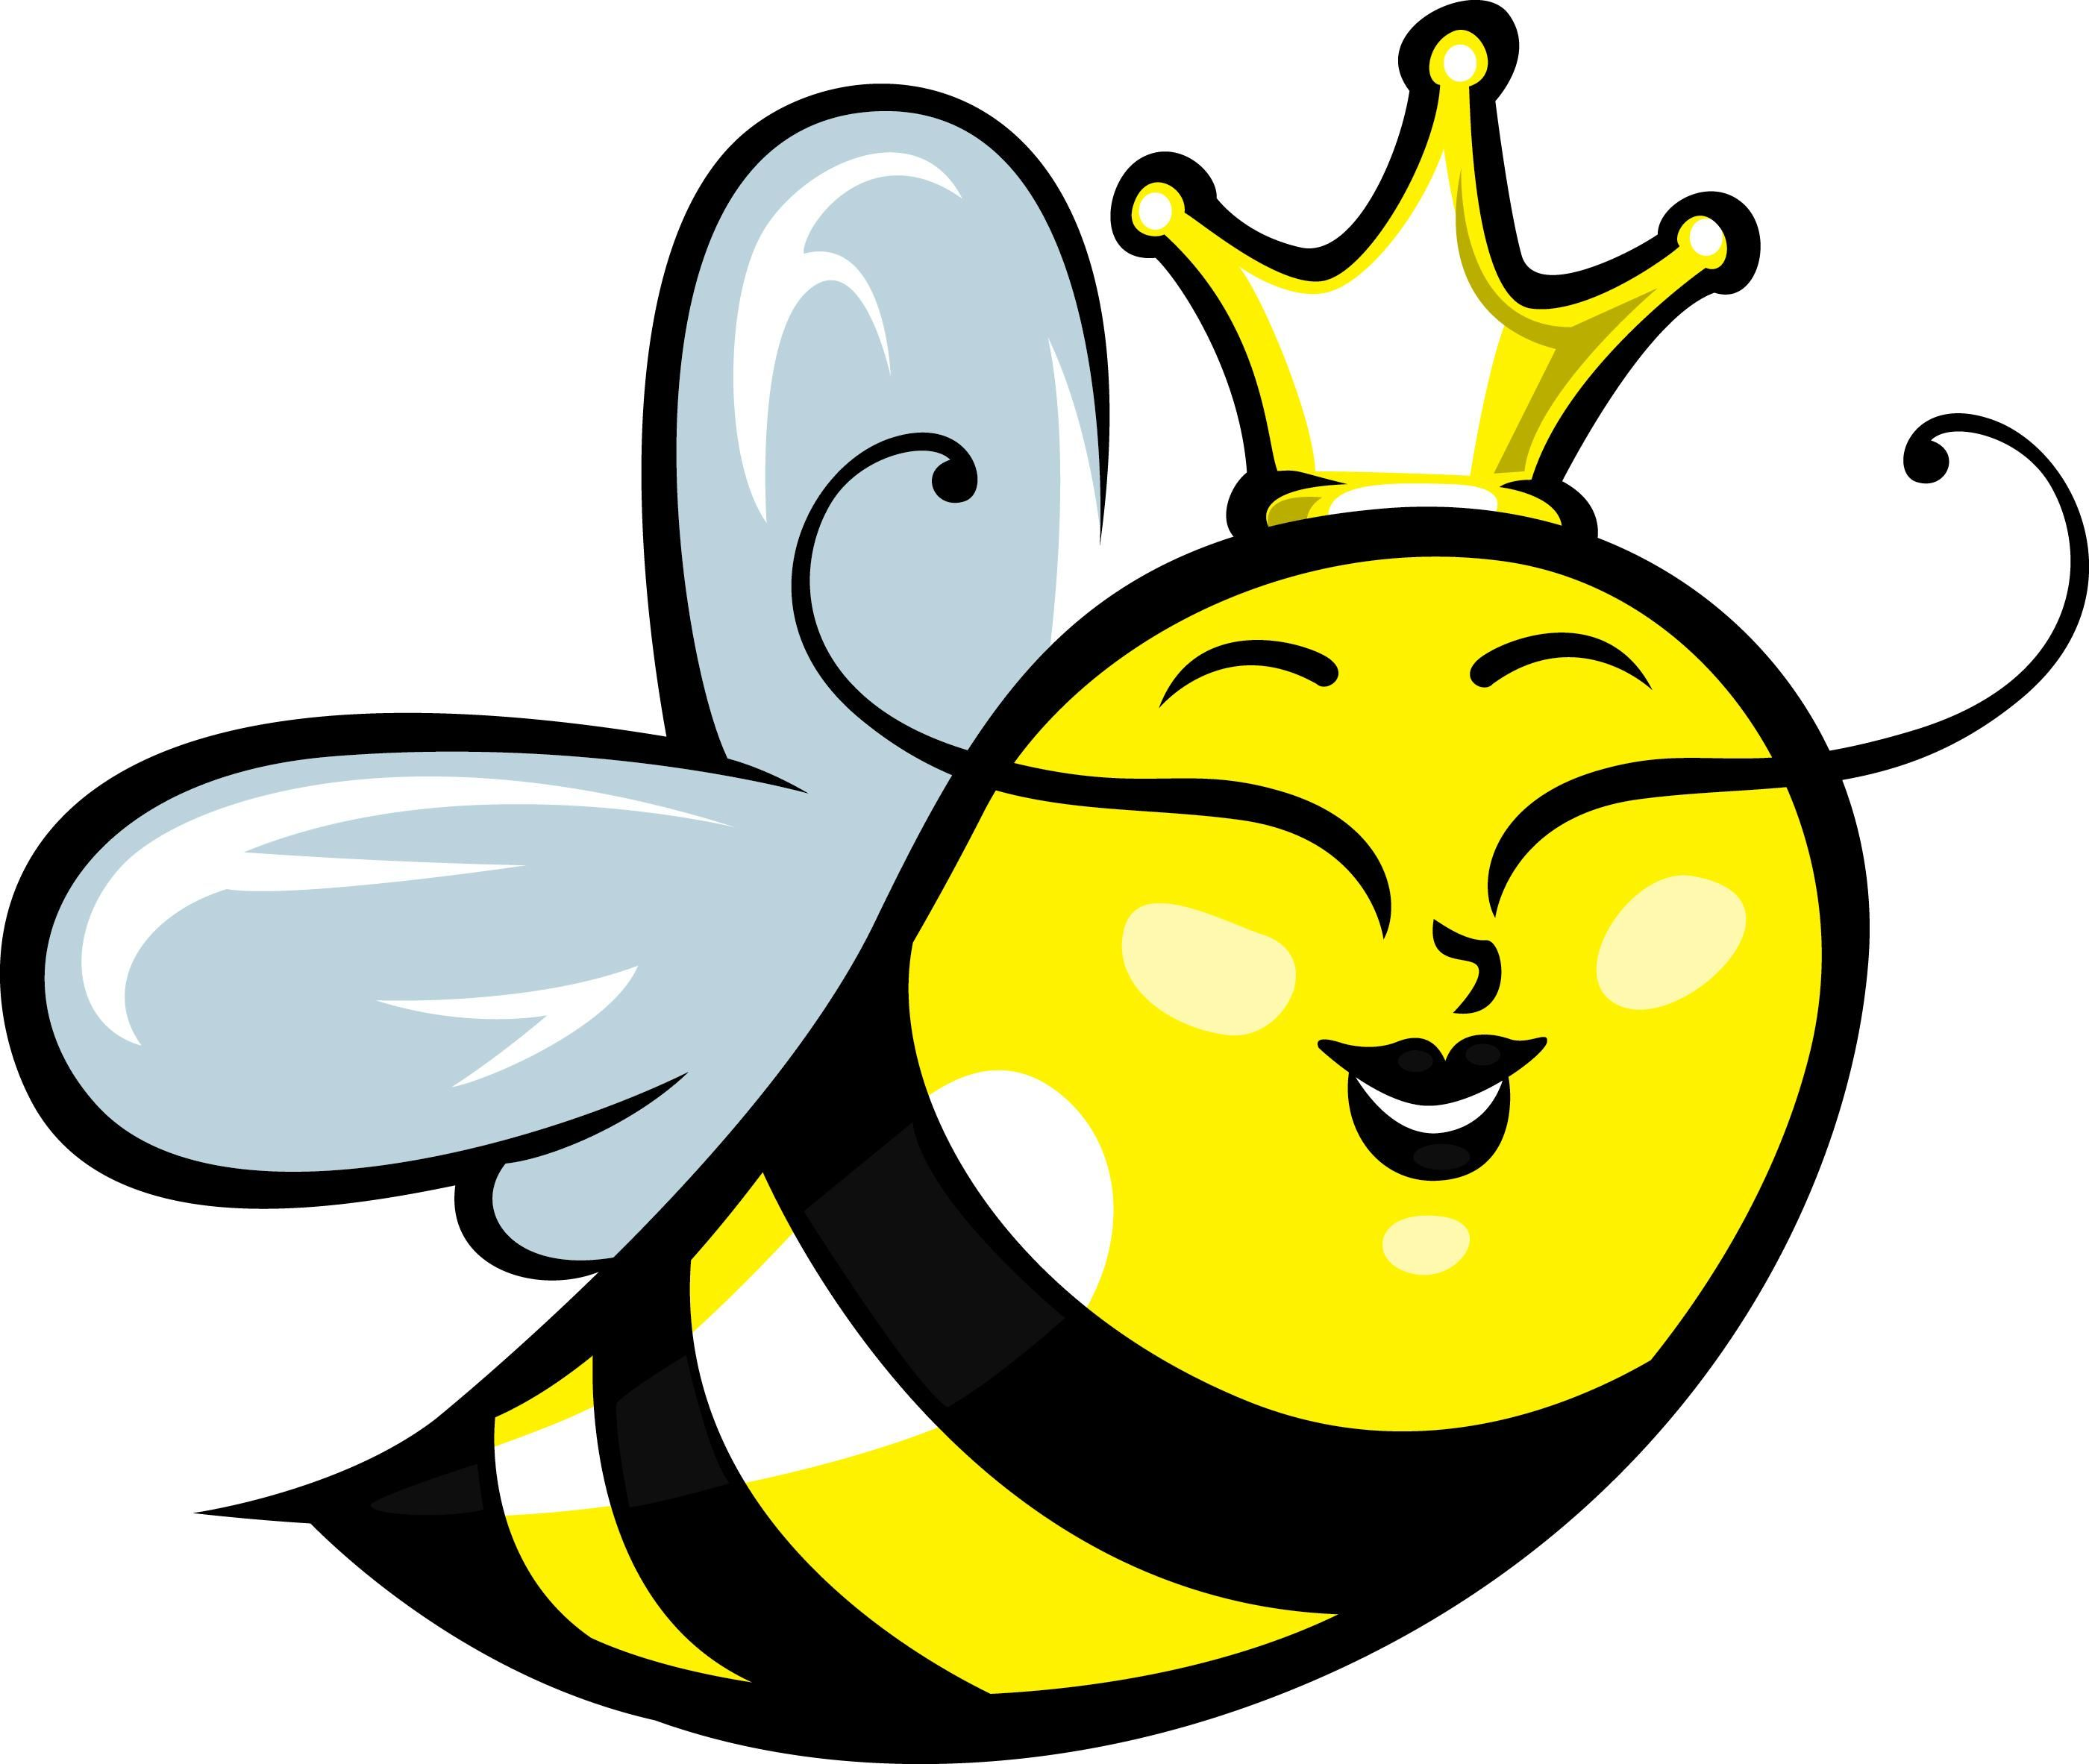 bee clipart bumble bee free all rights the cliparts art practice rh pinterest co uk  queen bee clipart free